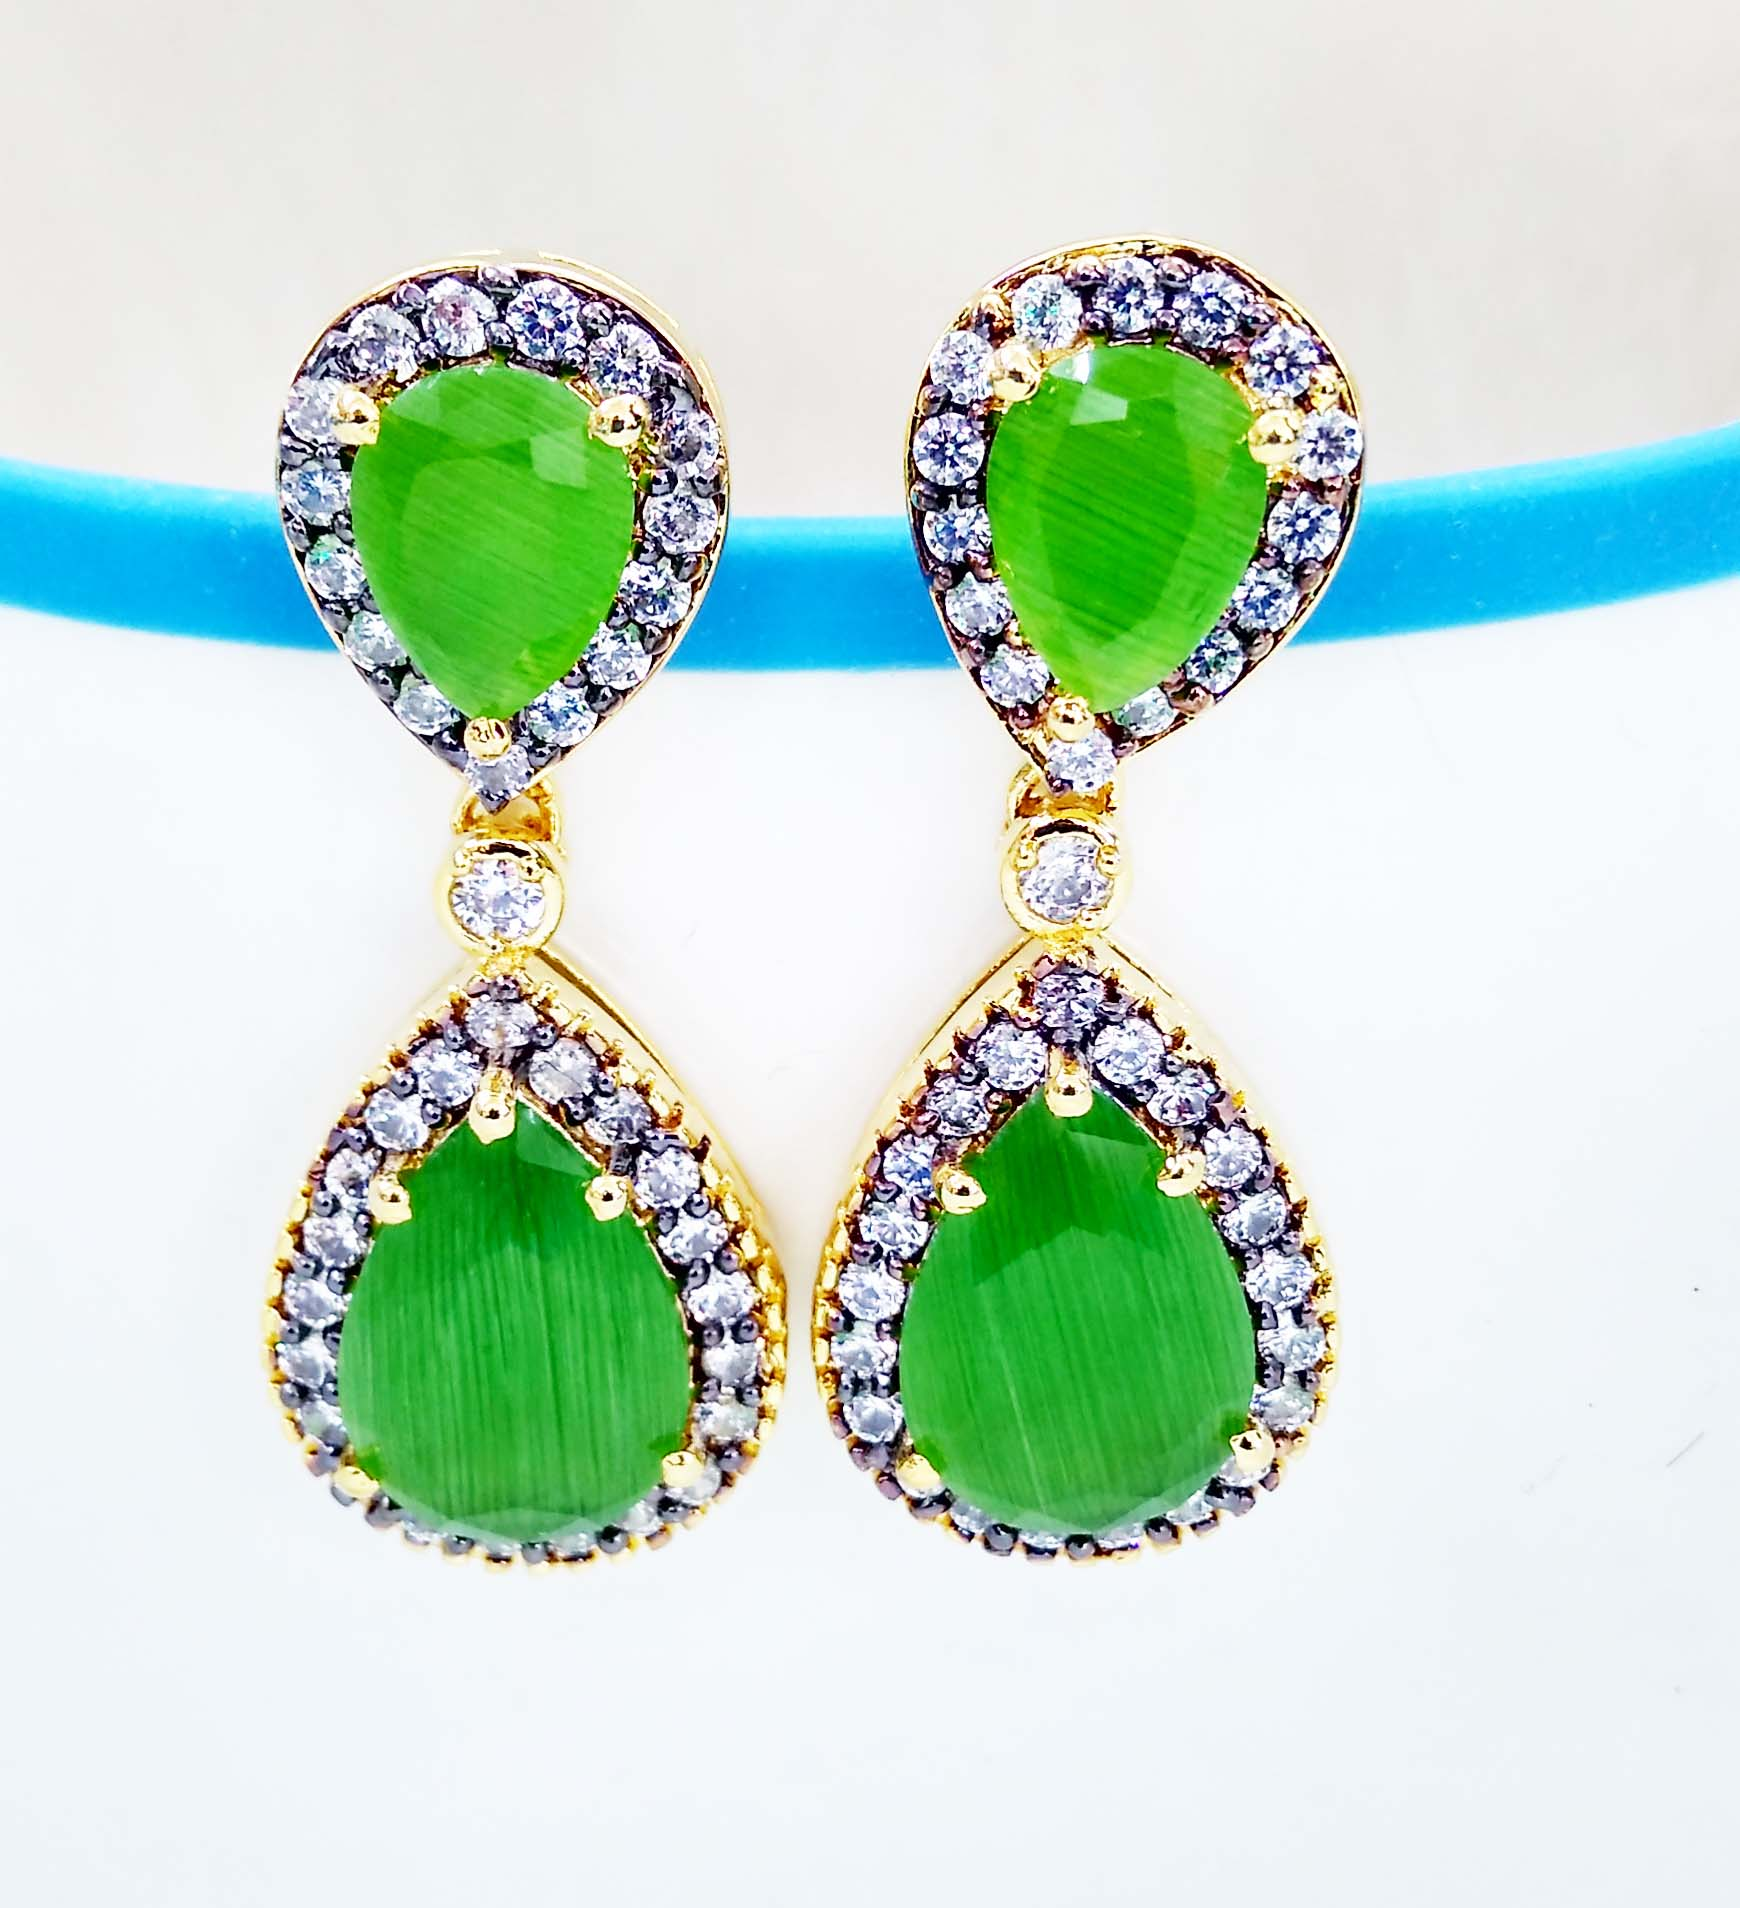 Fancy CZ Stone Earring.  In order to fulfill the ever changing demands of our respected clients, we are engaged in offering Fashion CZ Earrings. The offered Fashion CZ Earrings imparts an attractive and royal touch to the persona of wearer. This Fashion CZ Earrings is beautifully designed and crafted using quality tested CZ, Color Stone and latest techniques by our agile professionals. Furthermore, our offered Fashion CZ Earring is provided in proper packaging for assuring its quality  .  Features:  Exquisite pattern  Unique design  Eye-striking appearance   Other Details:  Made from copper & Brass  High Gold Polish  Skin friendly Material  Stylish look  Elegant Design  suitable for any outfit  Best Wholesale Prices  Best Quality  Fastest Selling Designs.  Manufacturer Fashion CZ Earring.